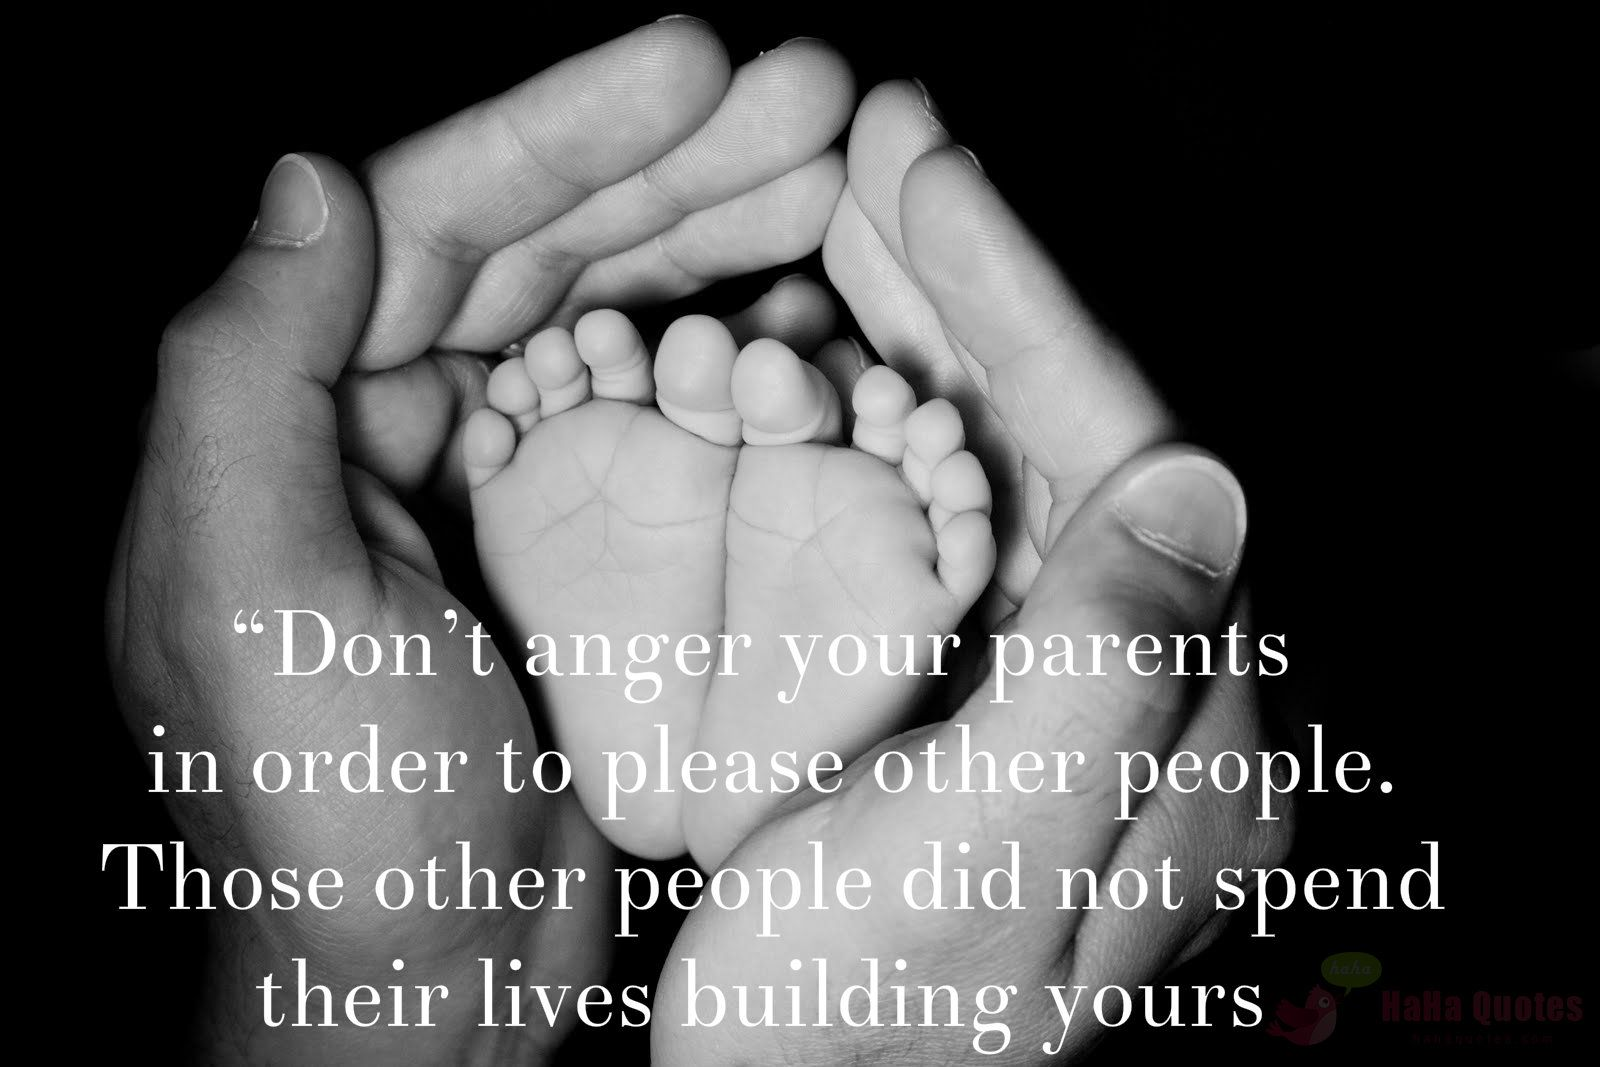 Quotes On Parents Love And Care For Their Children Son Daughter Love Parents Quotes Parenting Quotes Quotes For Whatsapp